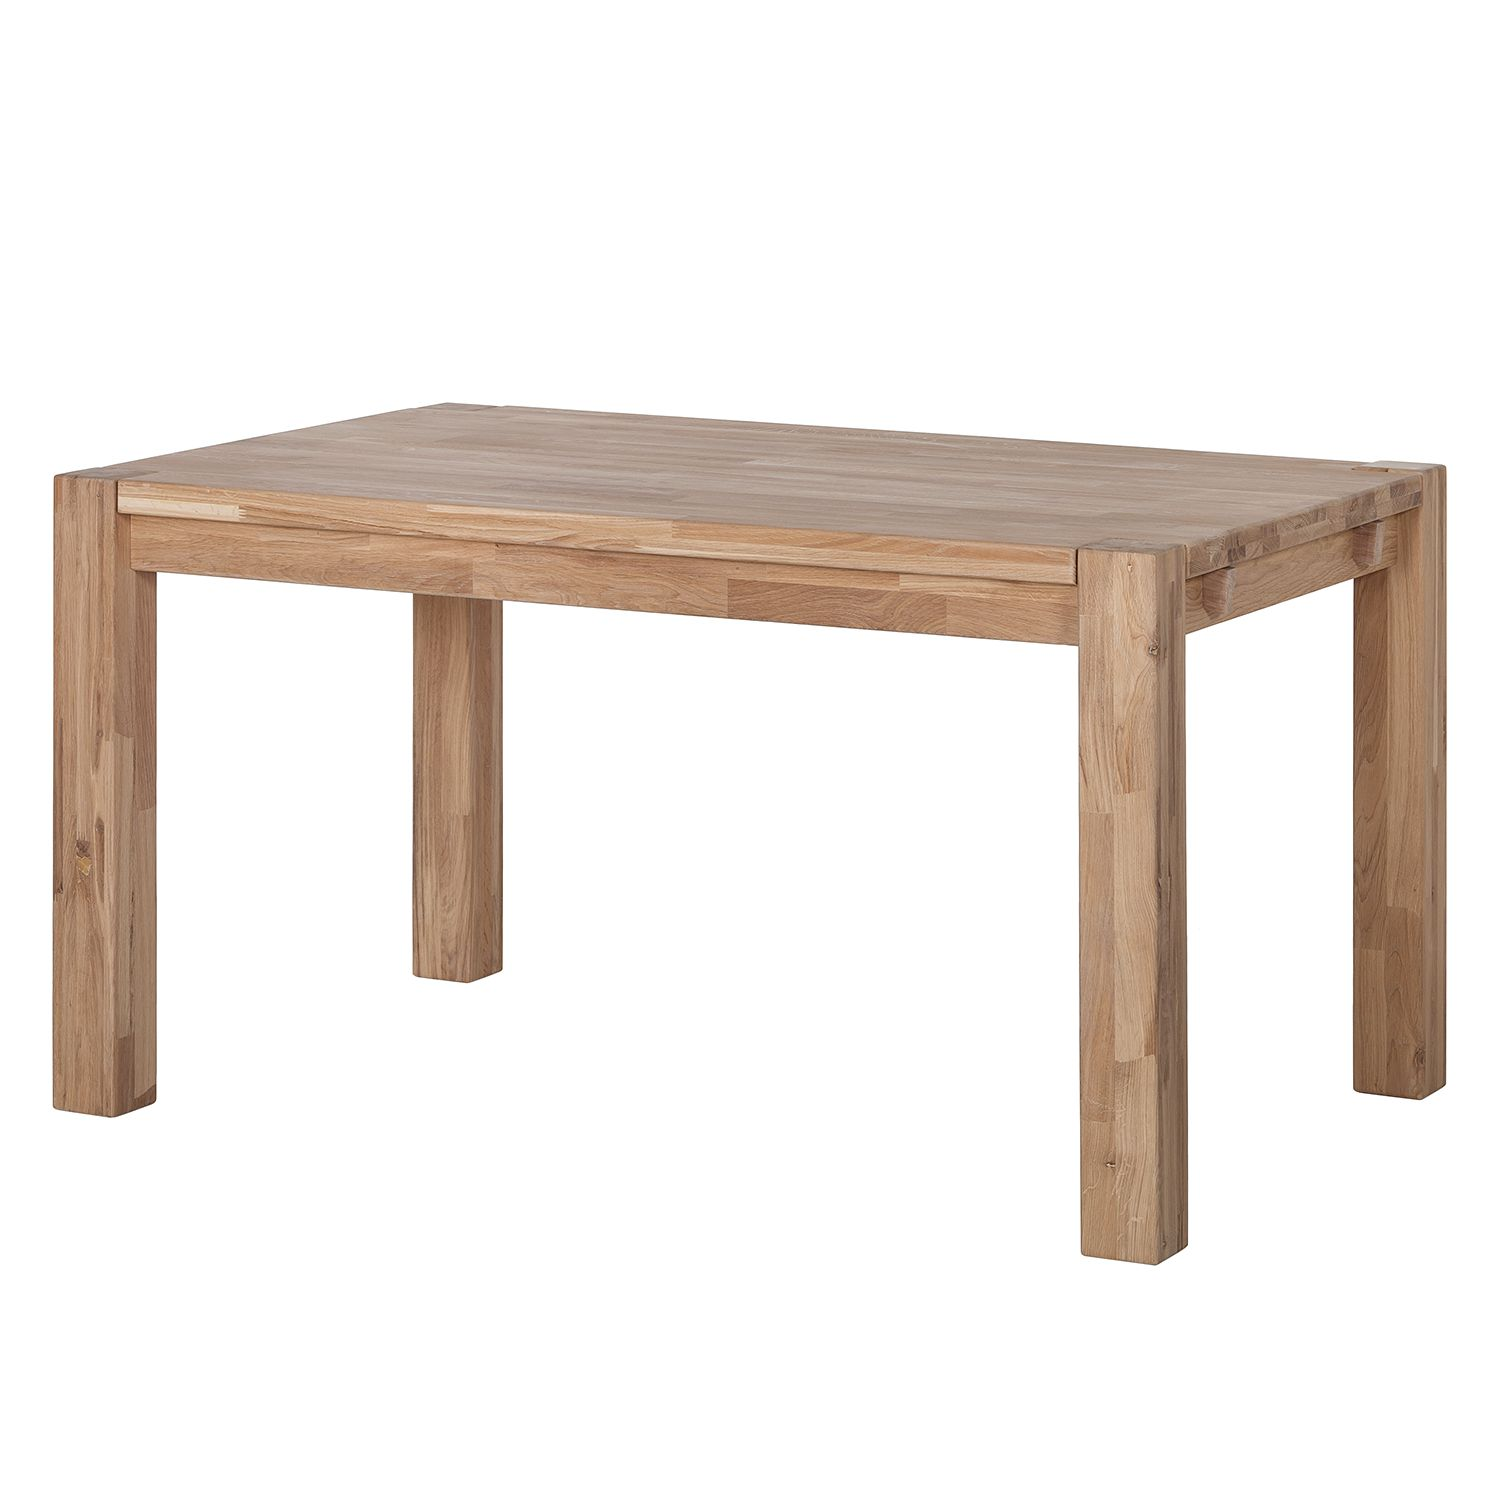 Esstisch Richwood Pied De Table Guide D'achat